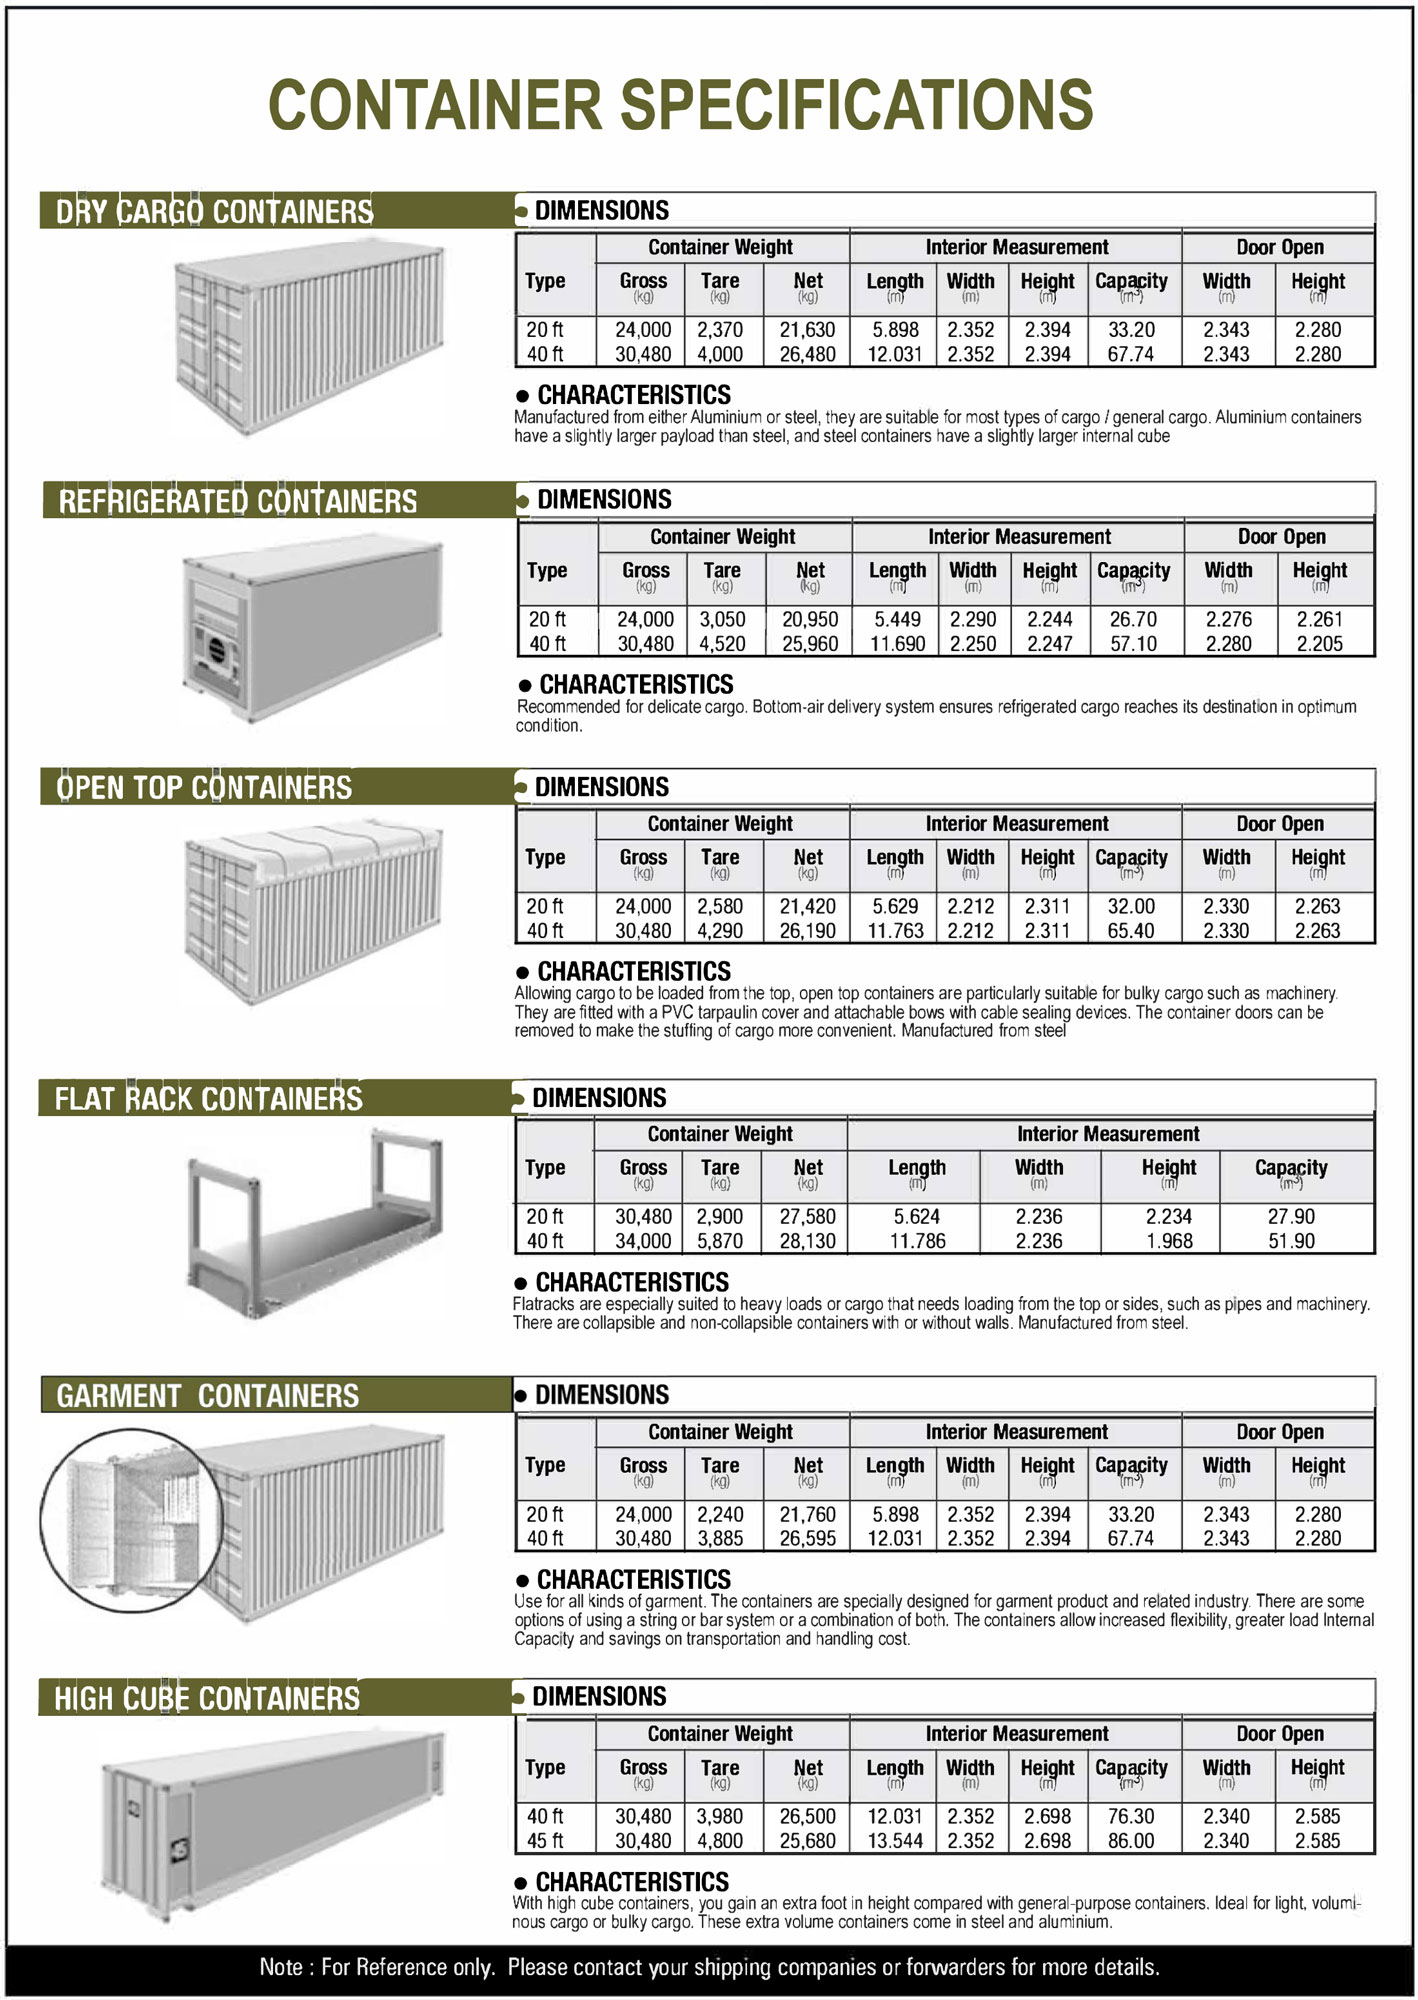 What Are The Different Container Specifications, Different Container Specifications